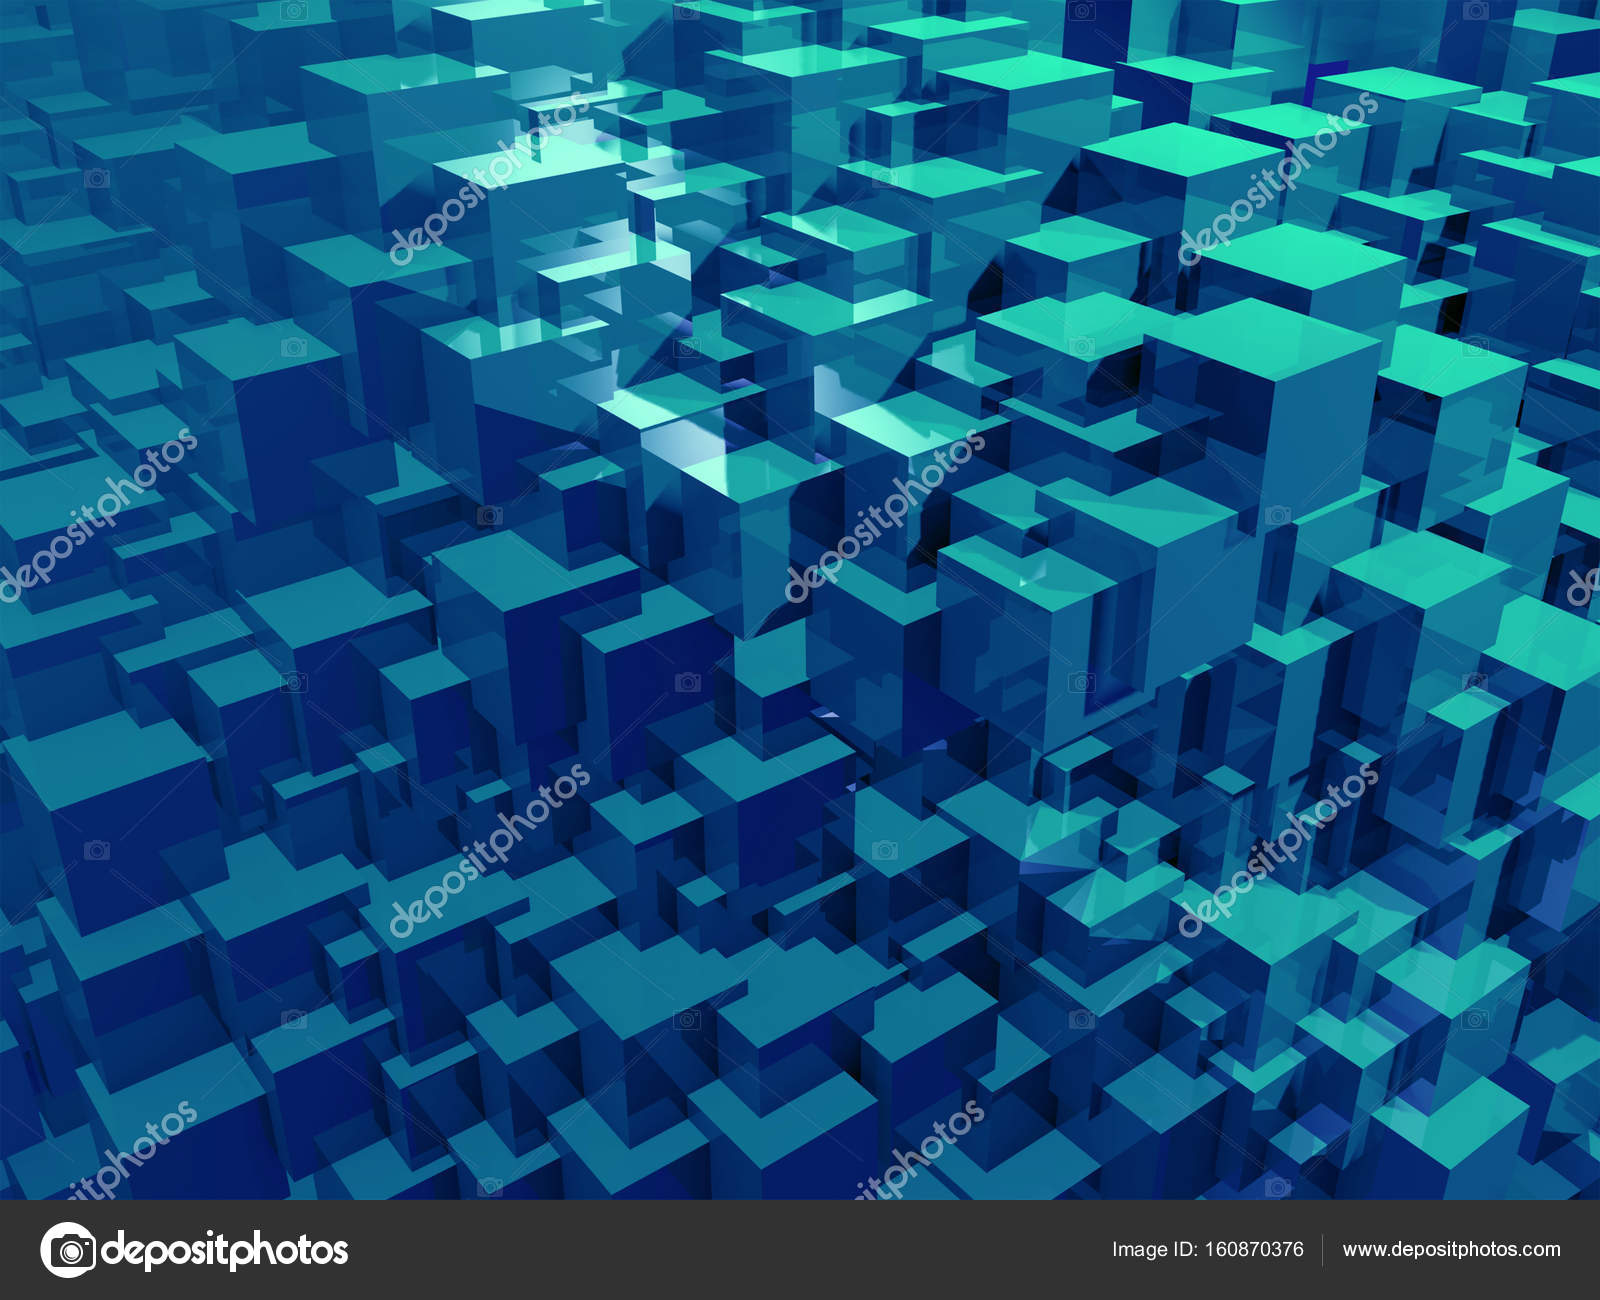 Geometric 3d Abstract Cube Colorful - HD Wallpaper